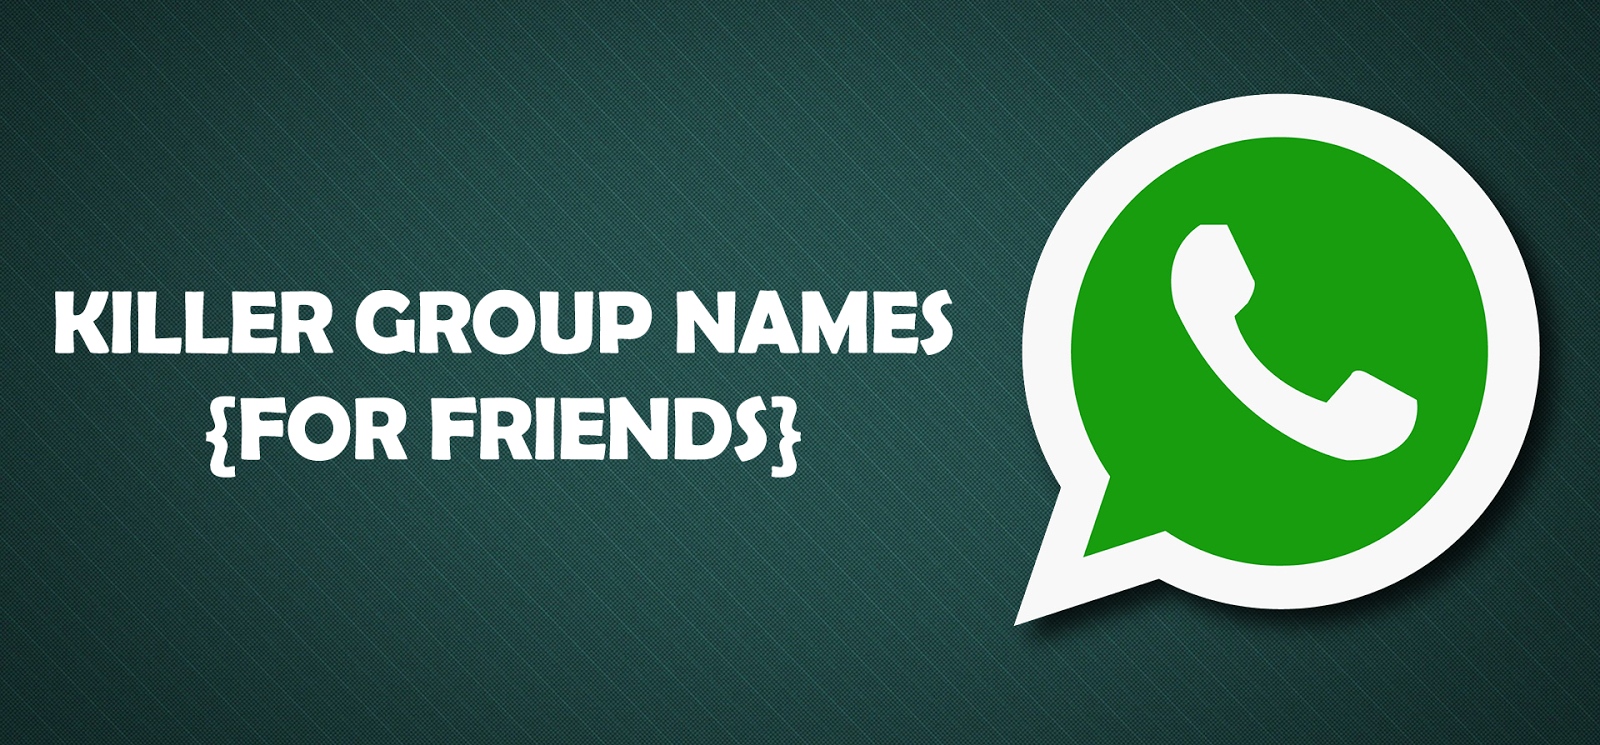 Best friend group name ideas